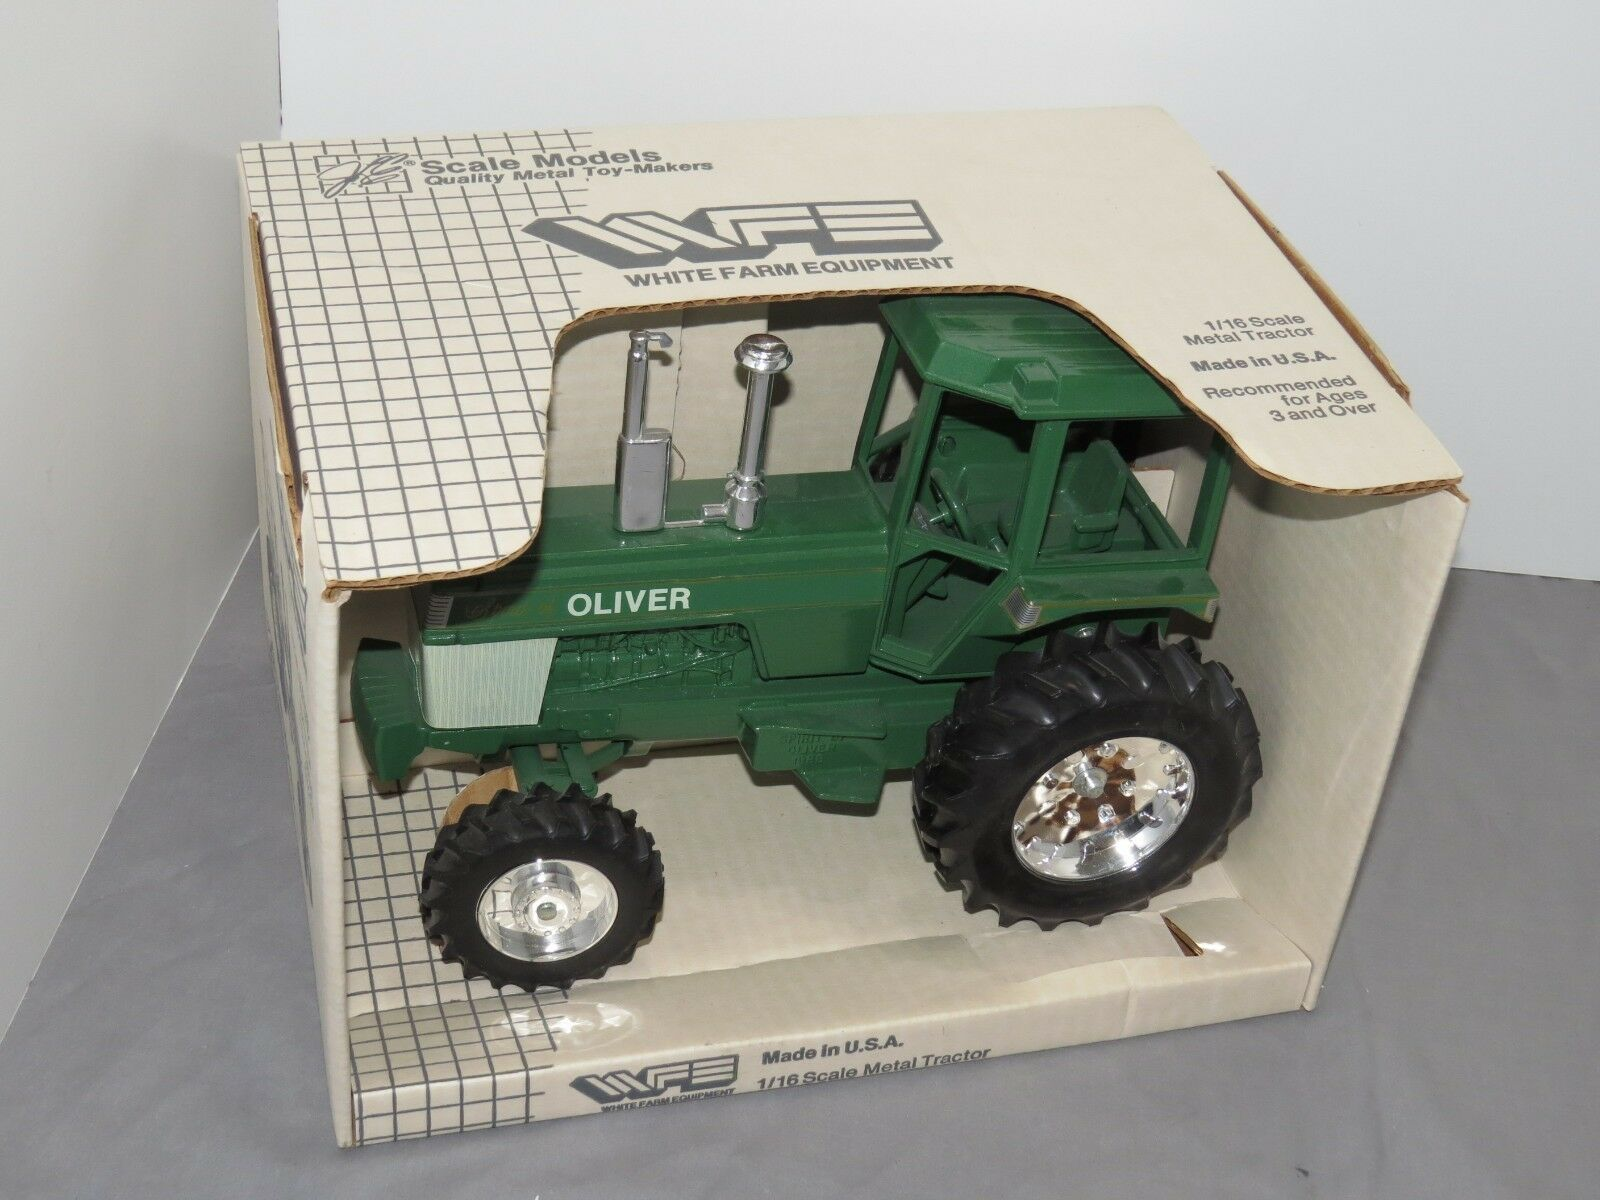 Vintage OLIVER Spirit of blanc tracteur échelle 1 16 Scale Models Nice  New in Box mfwd